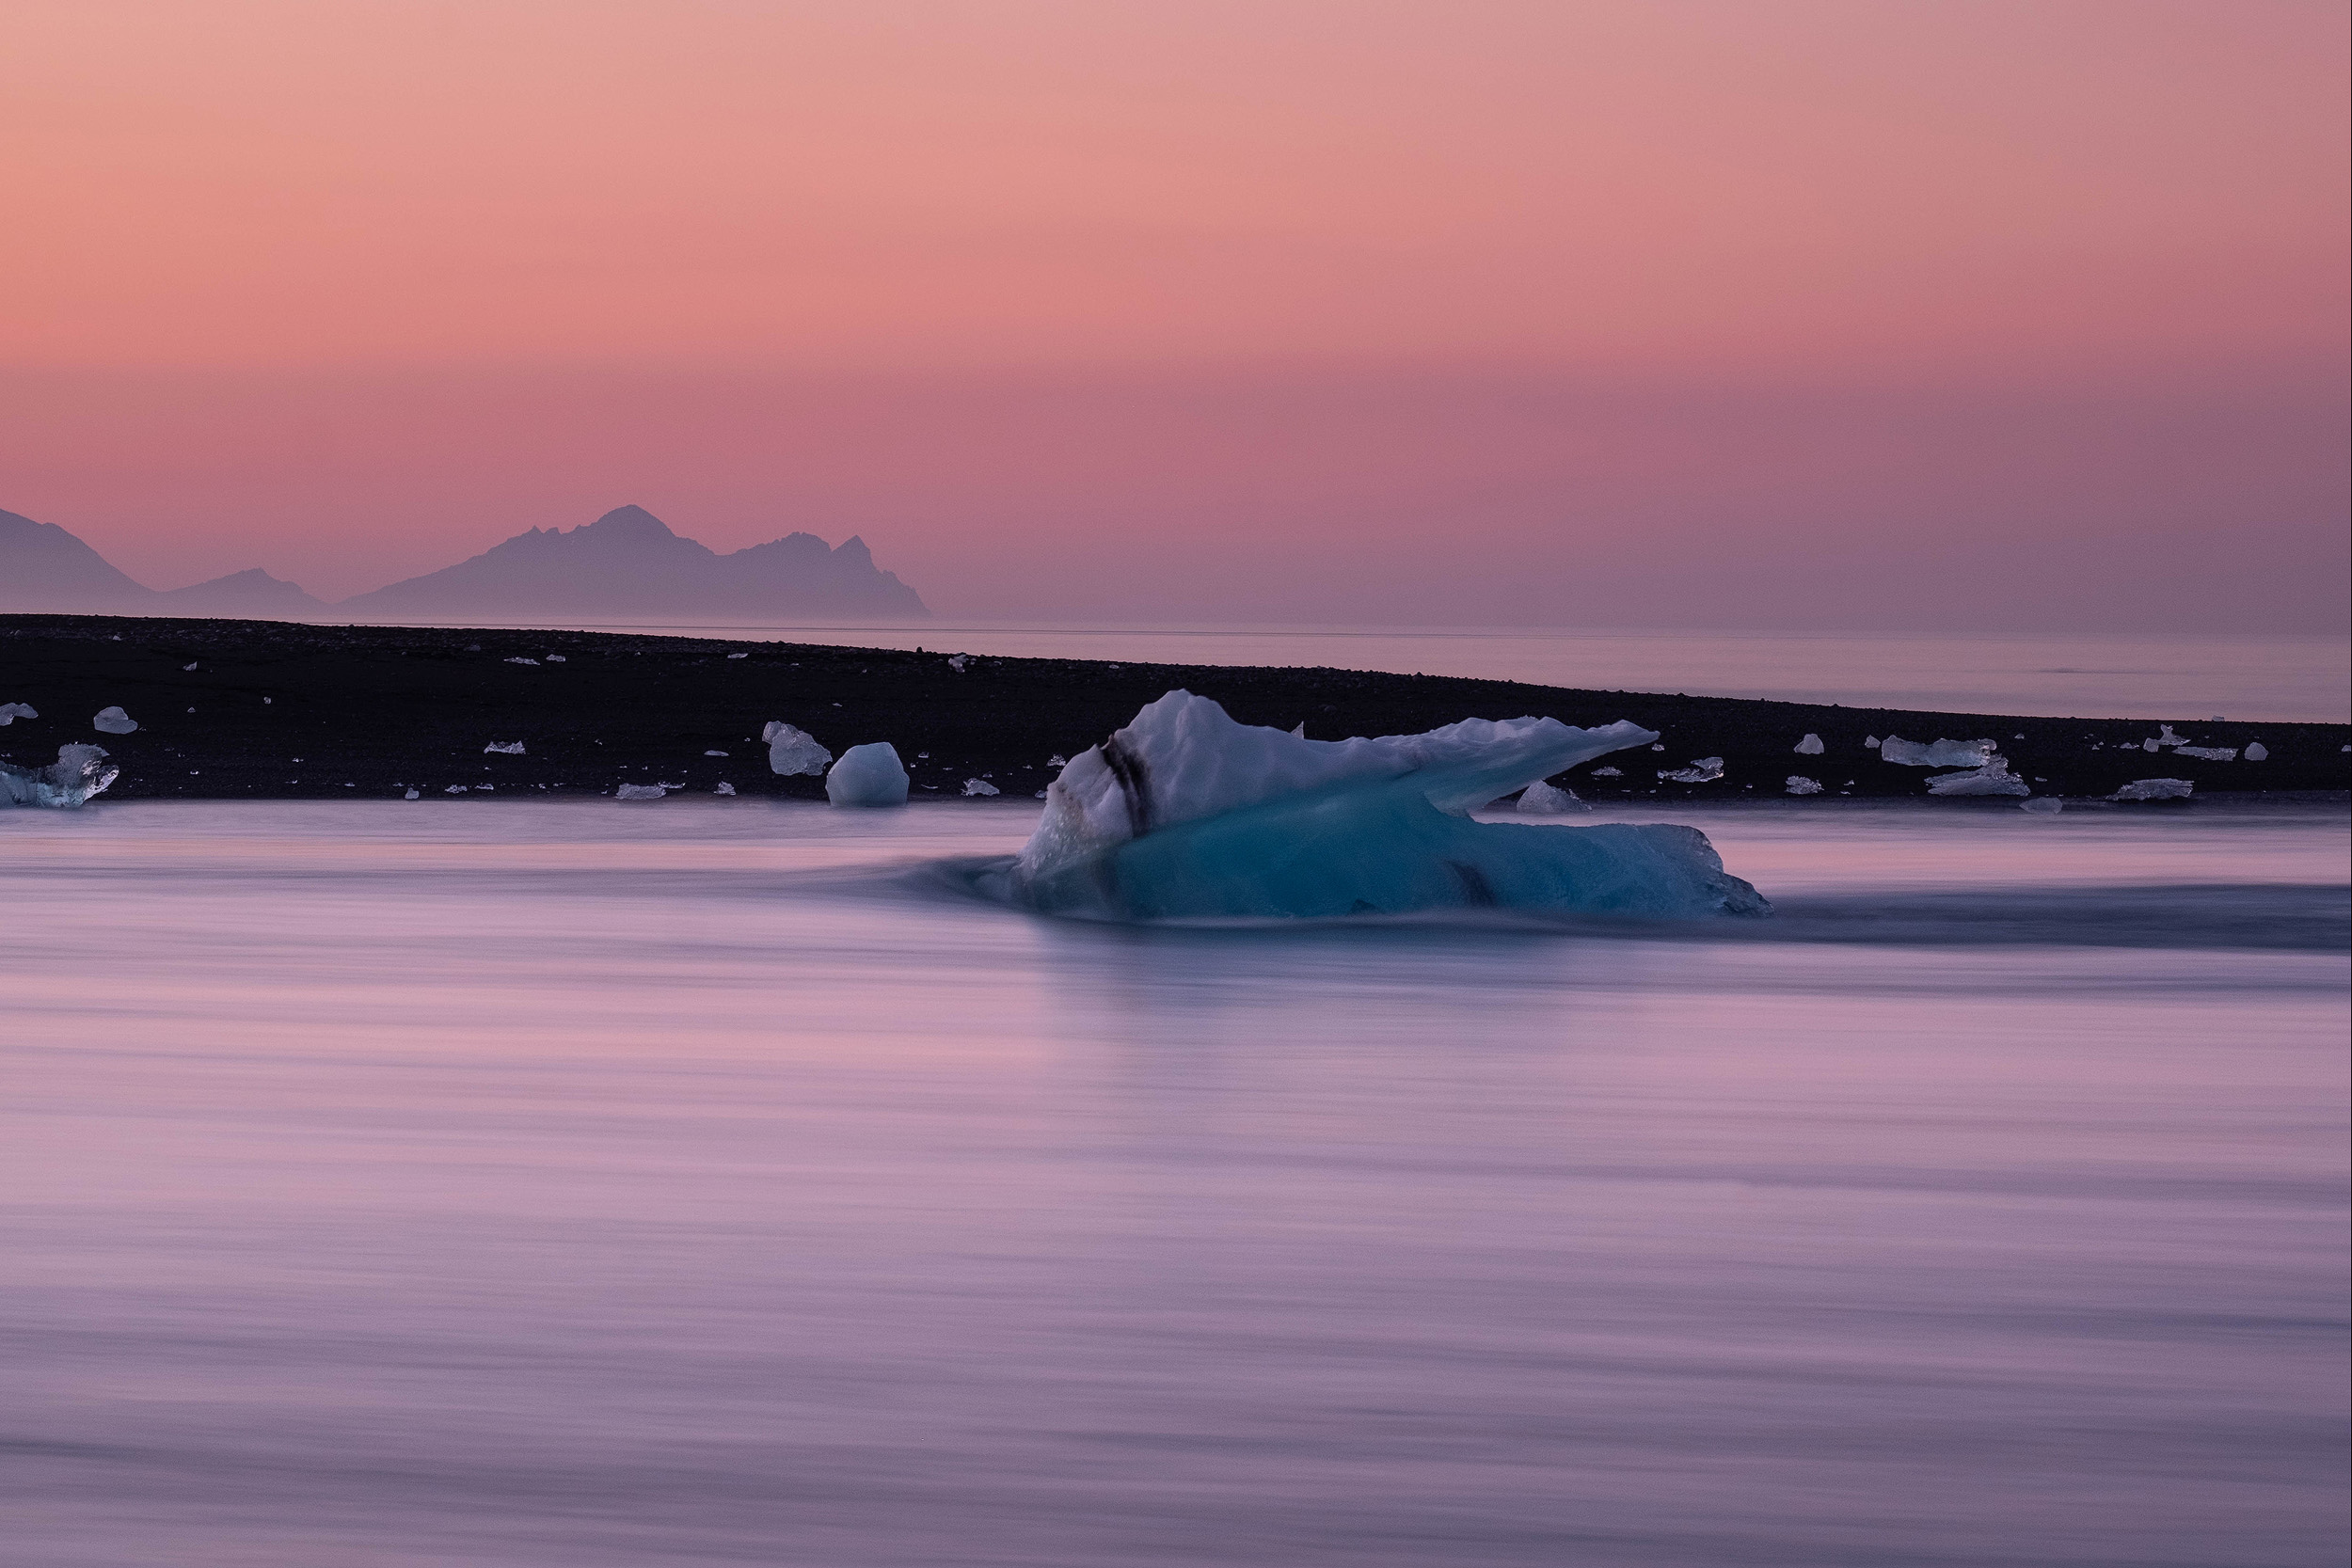 Icebergs washed up on the black sand beach at Jokulsarlon with the distant peaks of the Vestrahorn beyond.